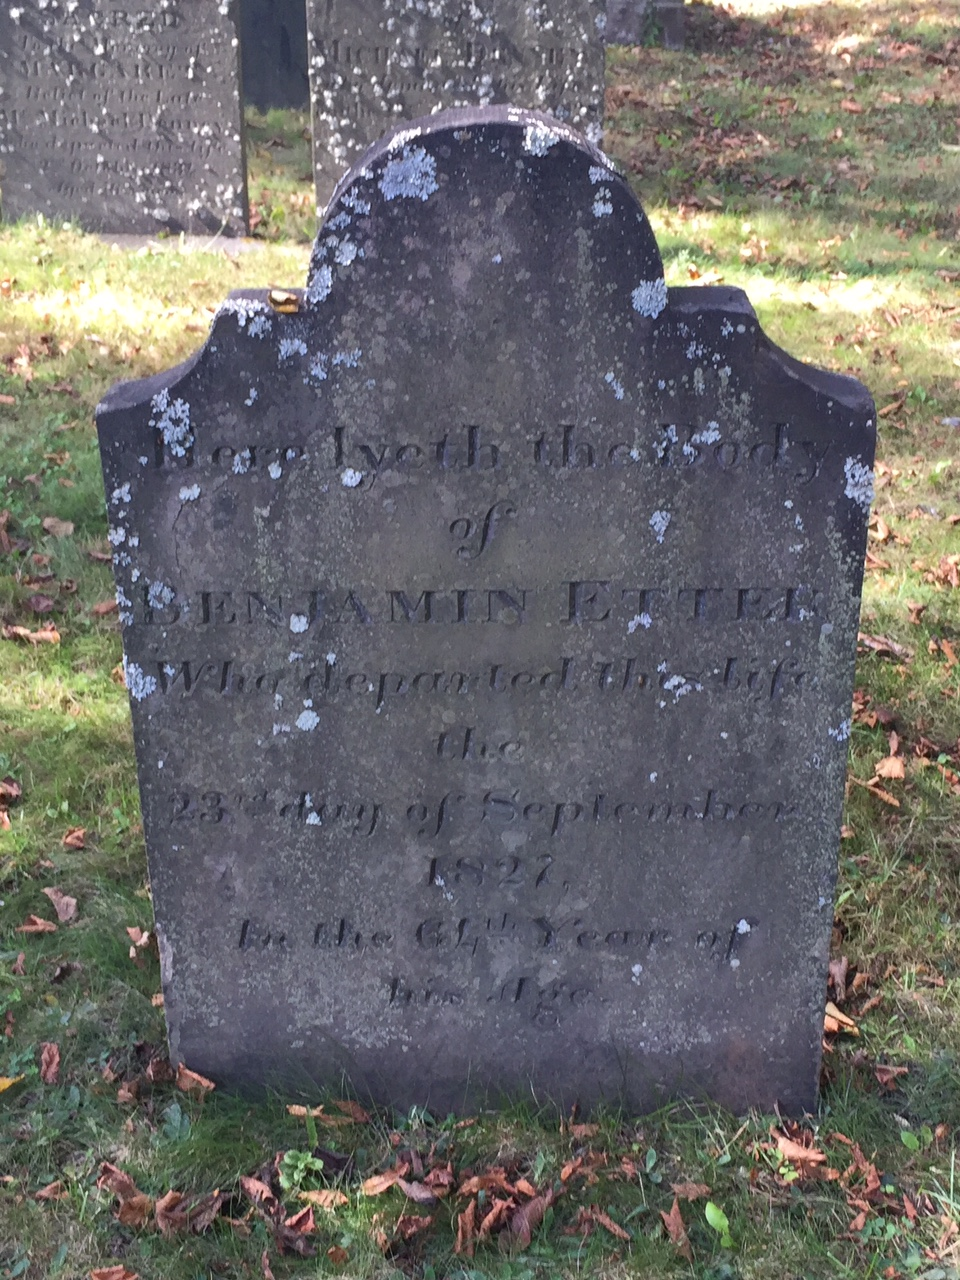 Benjamin Etter C Old Burying Ground C Halifax C Nova Scotia